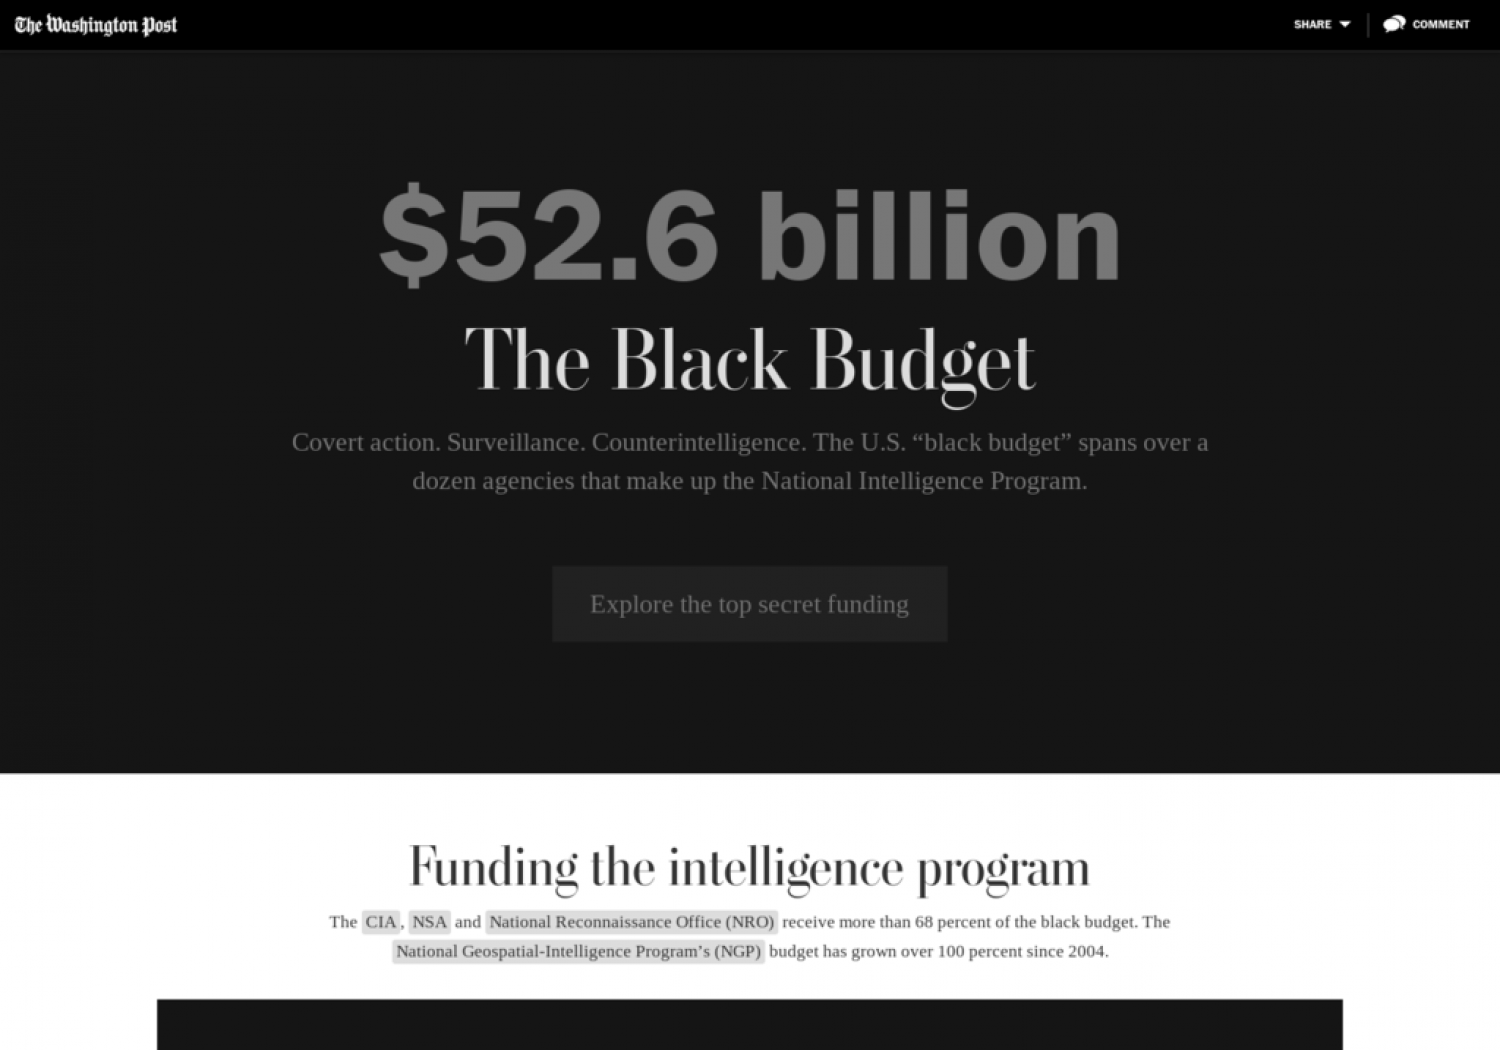 The Black Budget Infographic